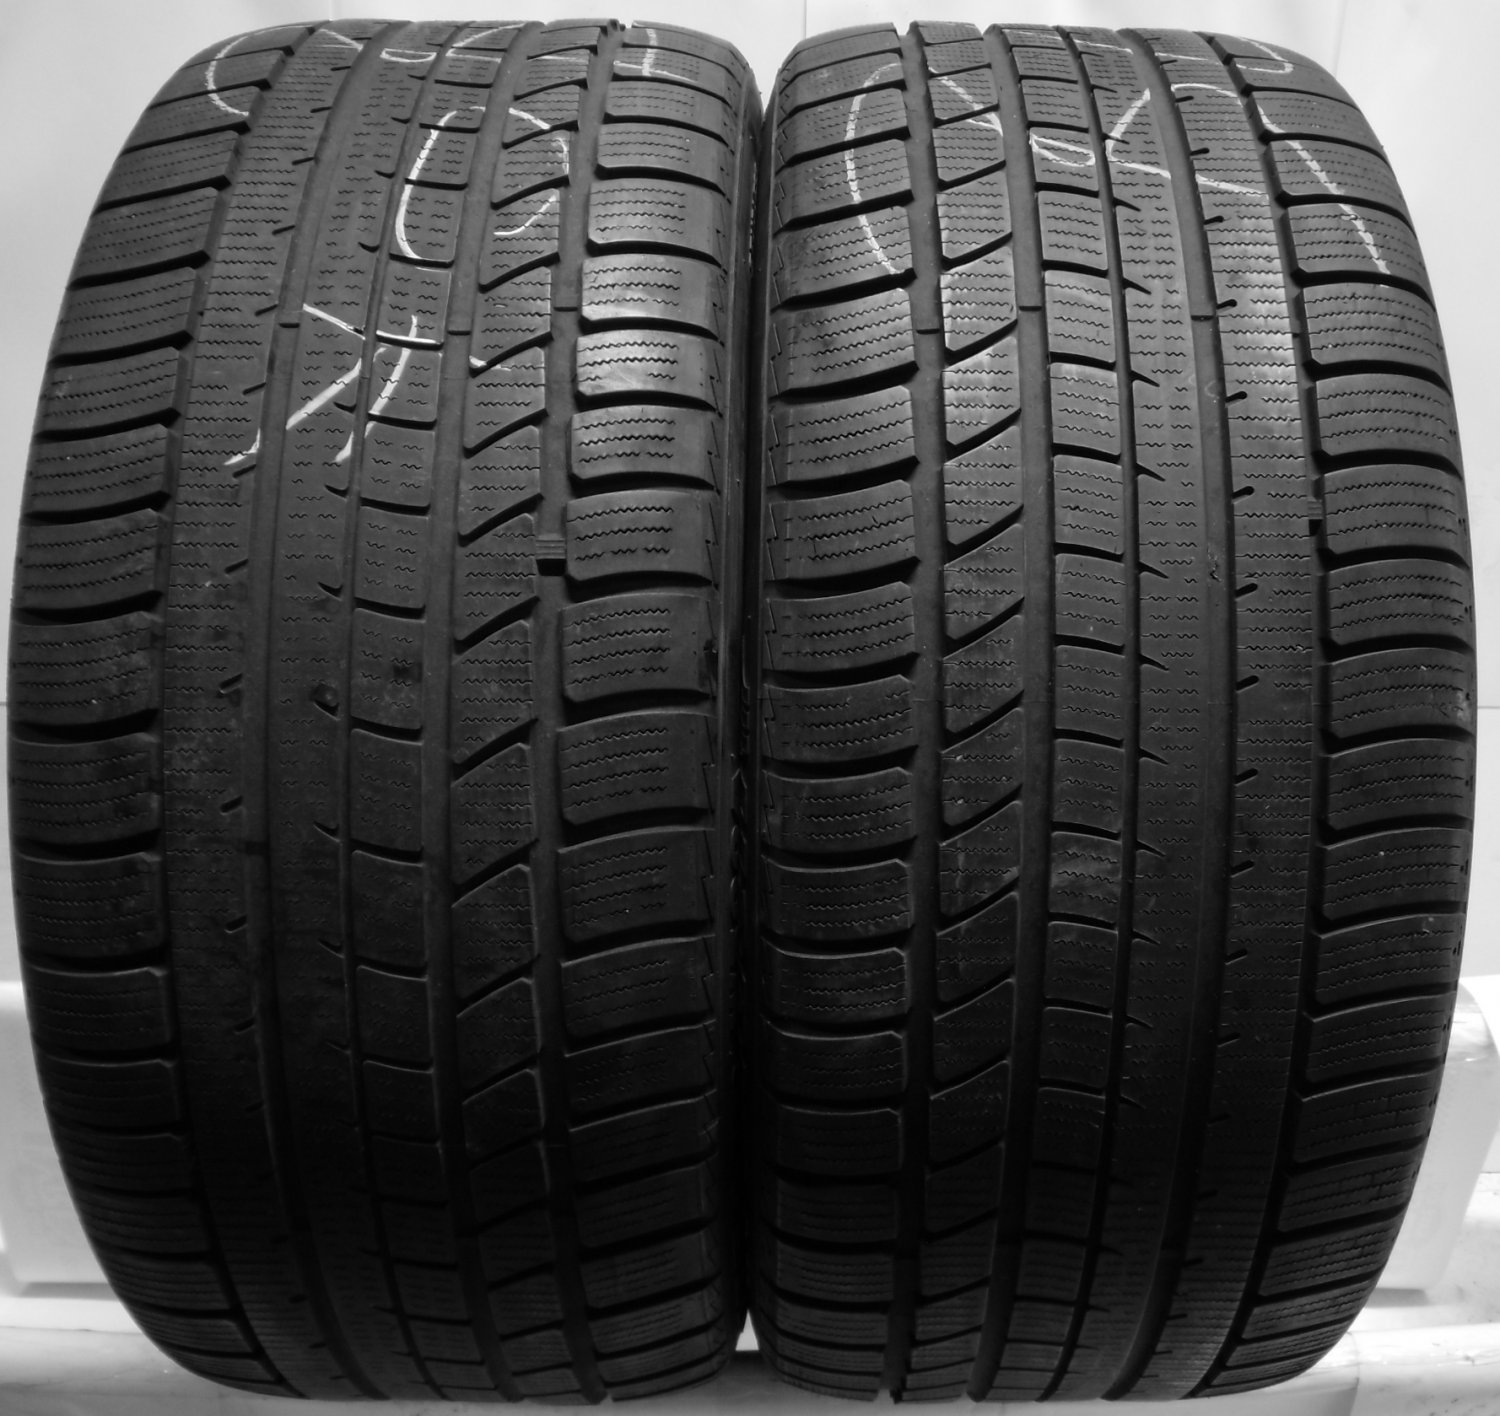 2 2754020 hankook 275 40 20 used part worn tyres x2 car. Black Bedroom Furniture Sets. Home Design Ideas